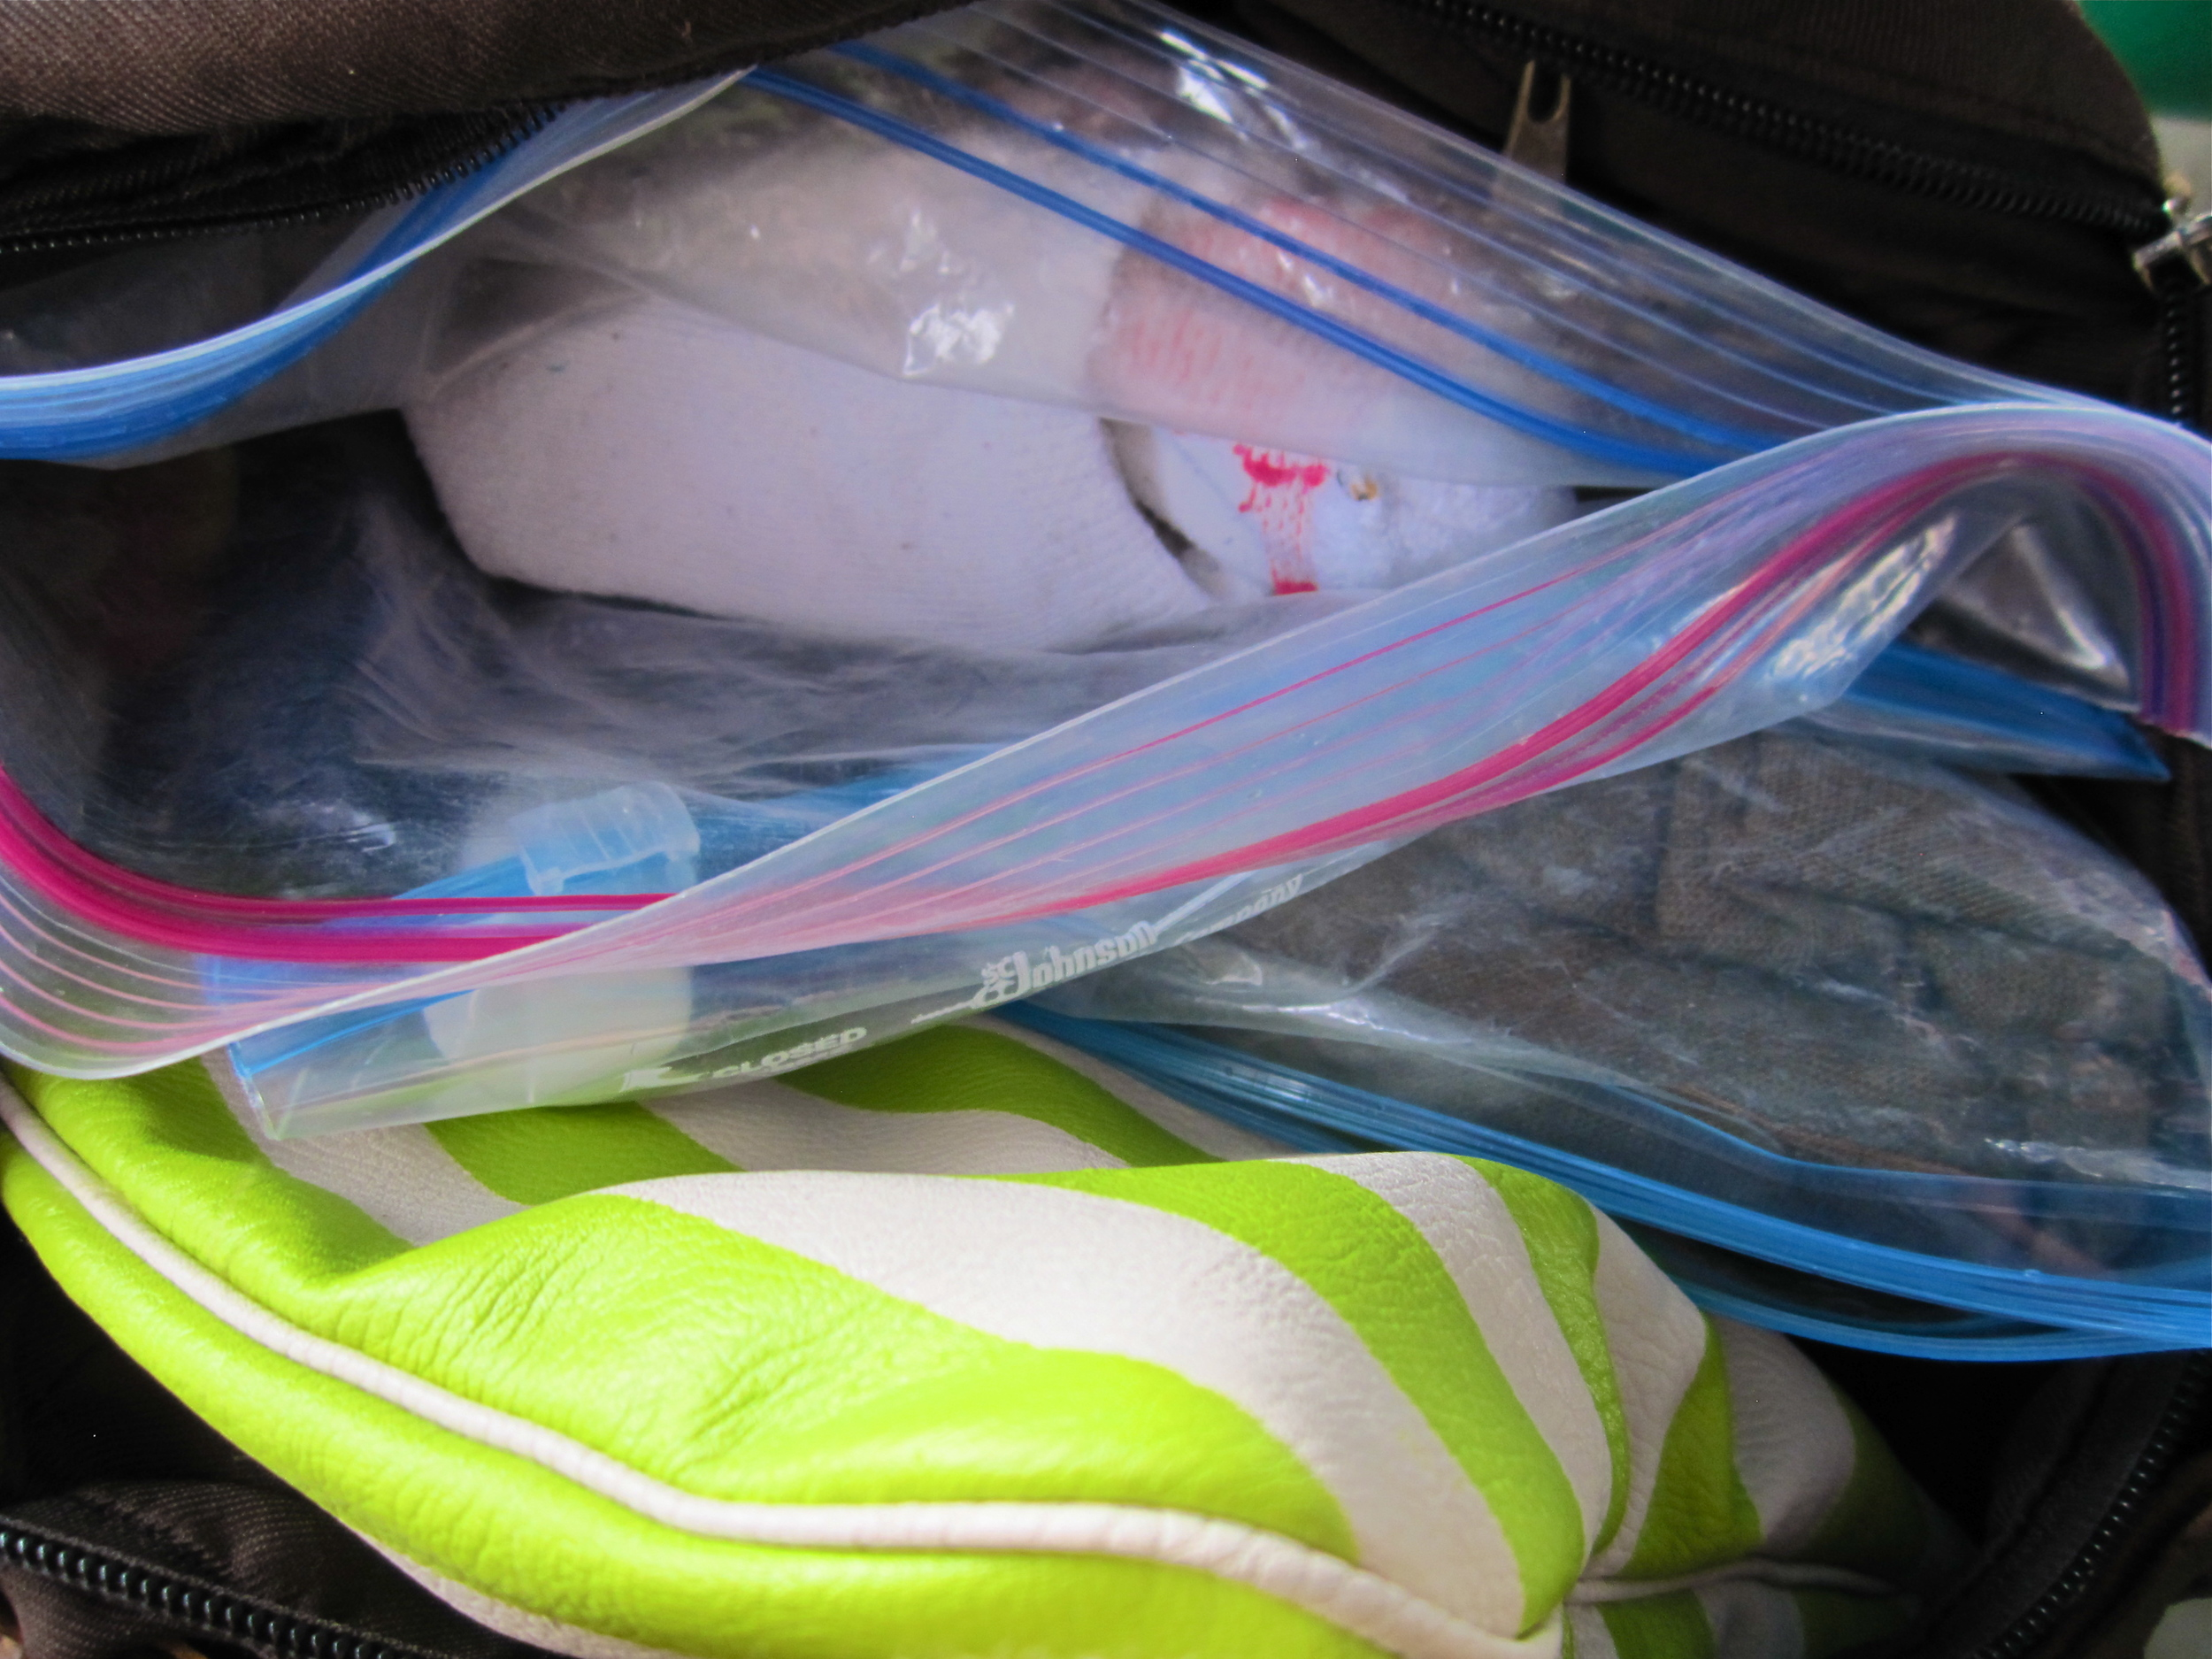 Everything in my bags was packed away in plastic — I had a feeling I would be a target... I was correct...